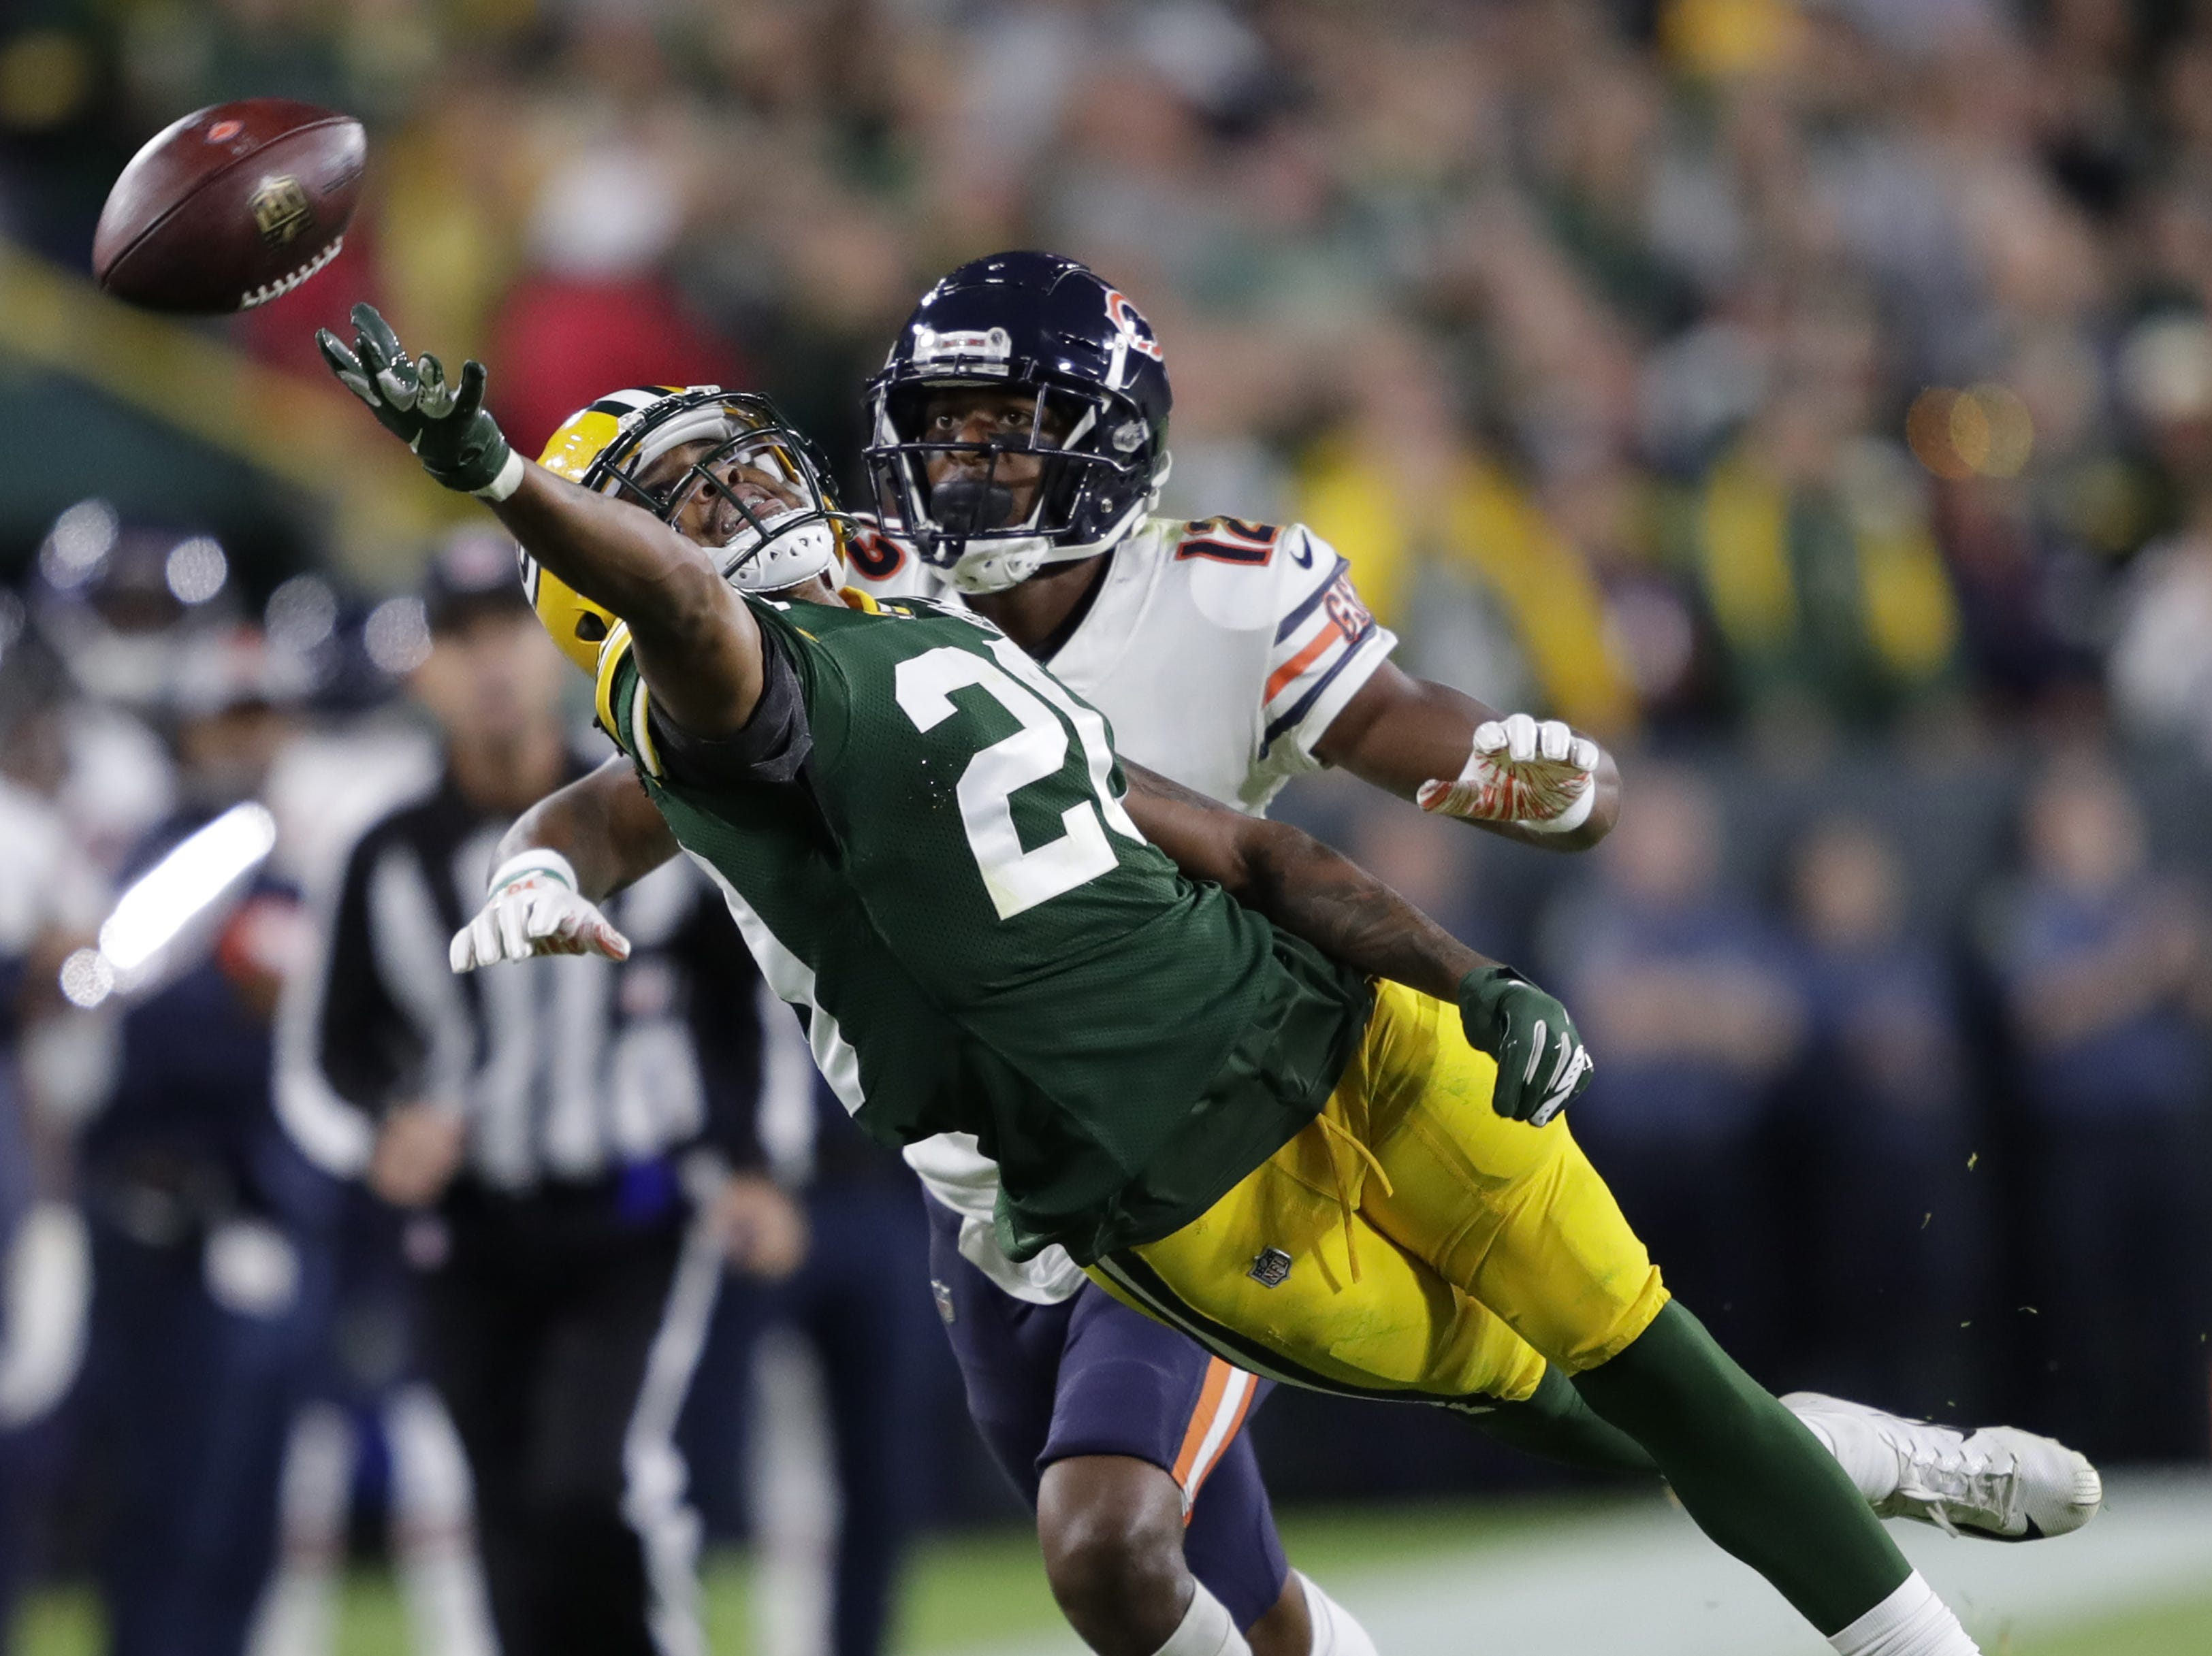 Green Bay Packers cornerback Kevin King (20) tries to intercept a pass intended to Chicago Bears wide receiver Allen Robinson (12) in the fourth quarter Sunday, Sept. 9, 2018, at Lambeau Field in Green Bay, Wis.